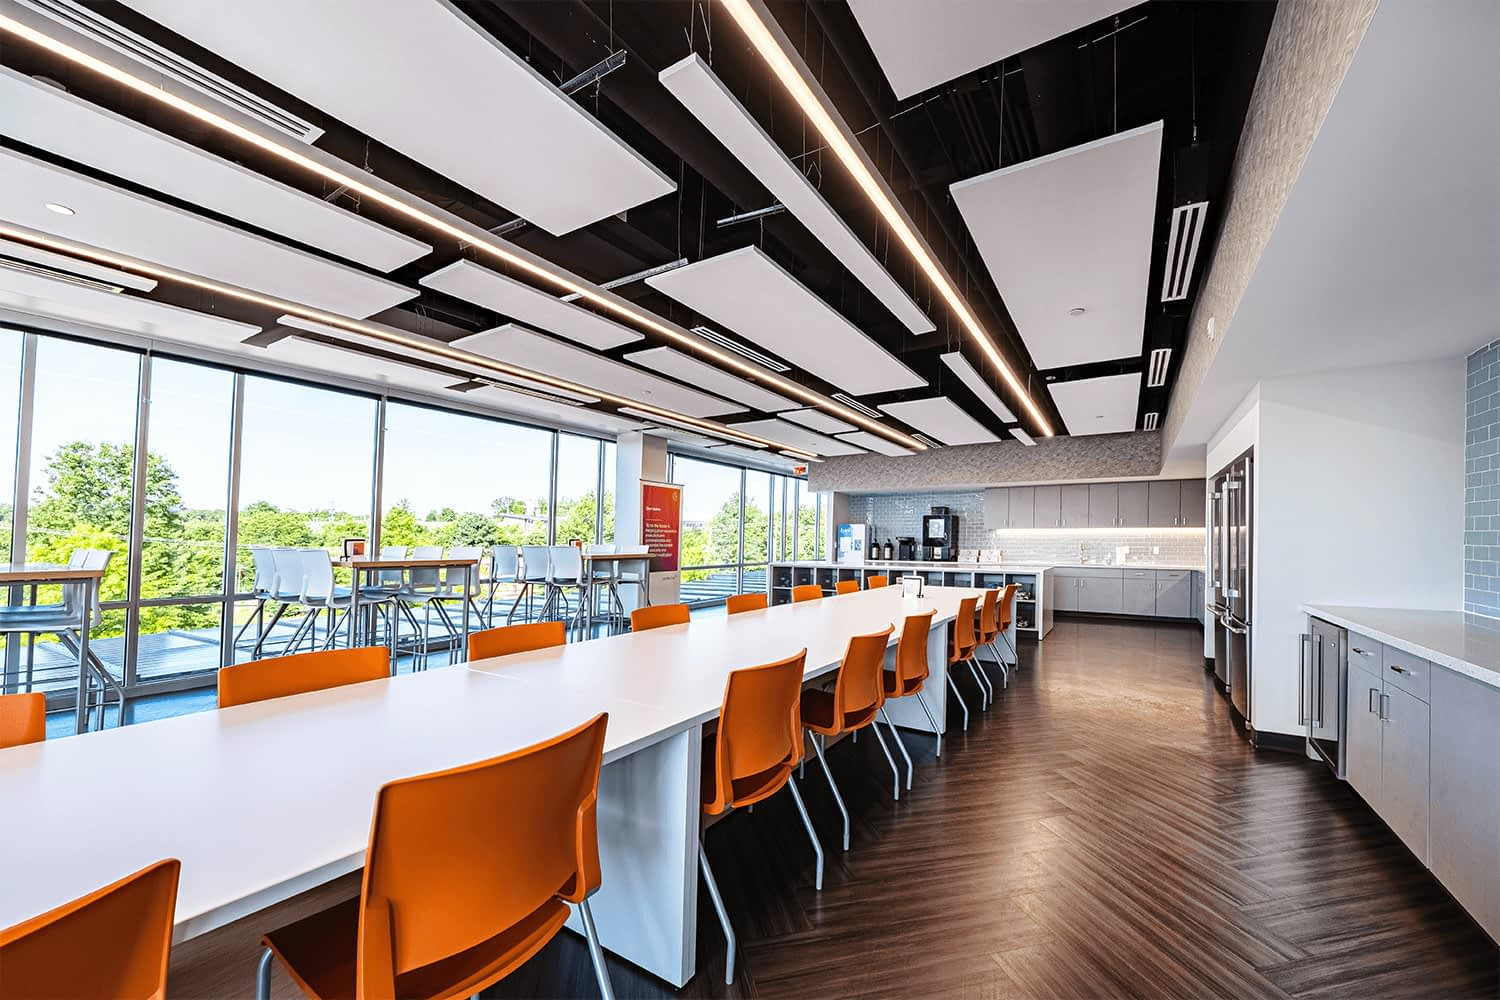 large café/break area with whiote tables and vibrant orange chairs